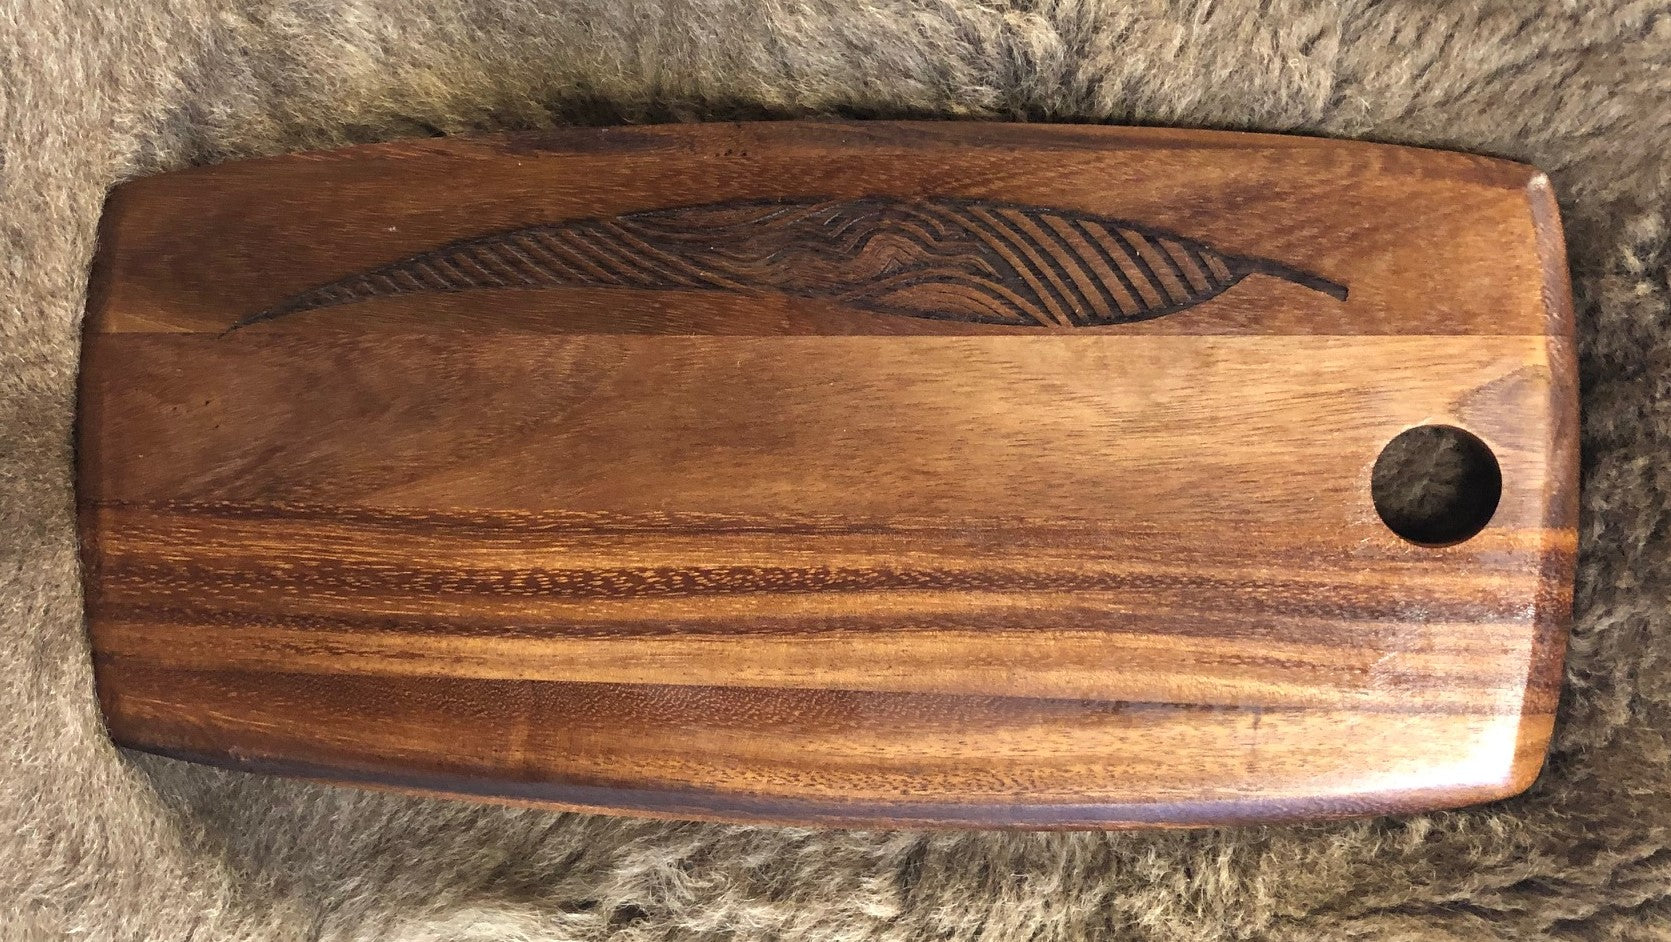 Acacia Wood Platter Small - Gum Leaves River Design   Each board has its own distinct pattern and is embellished with a Gum Leaf Design by Ngarga Warendj - Dancing Wombat - based on the Traditional symbols of South Eastern Aboriginal Art.  Your board comes with a card that gives the story of the artist and design.   Our boards are perfect for a house warming gift or spoil yourself and bring art into your everyday.  Our acacia boards are made from timber sourced from plantation grown trees